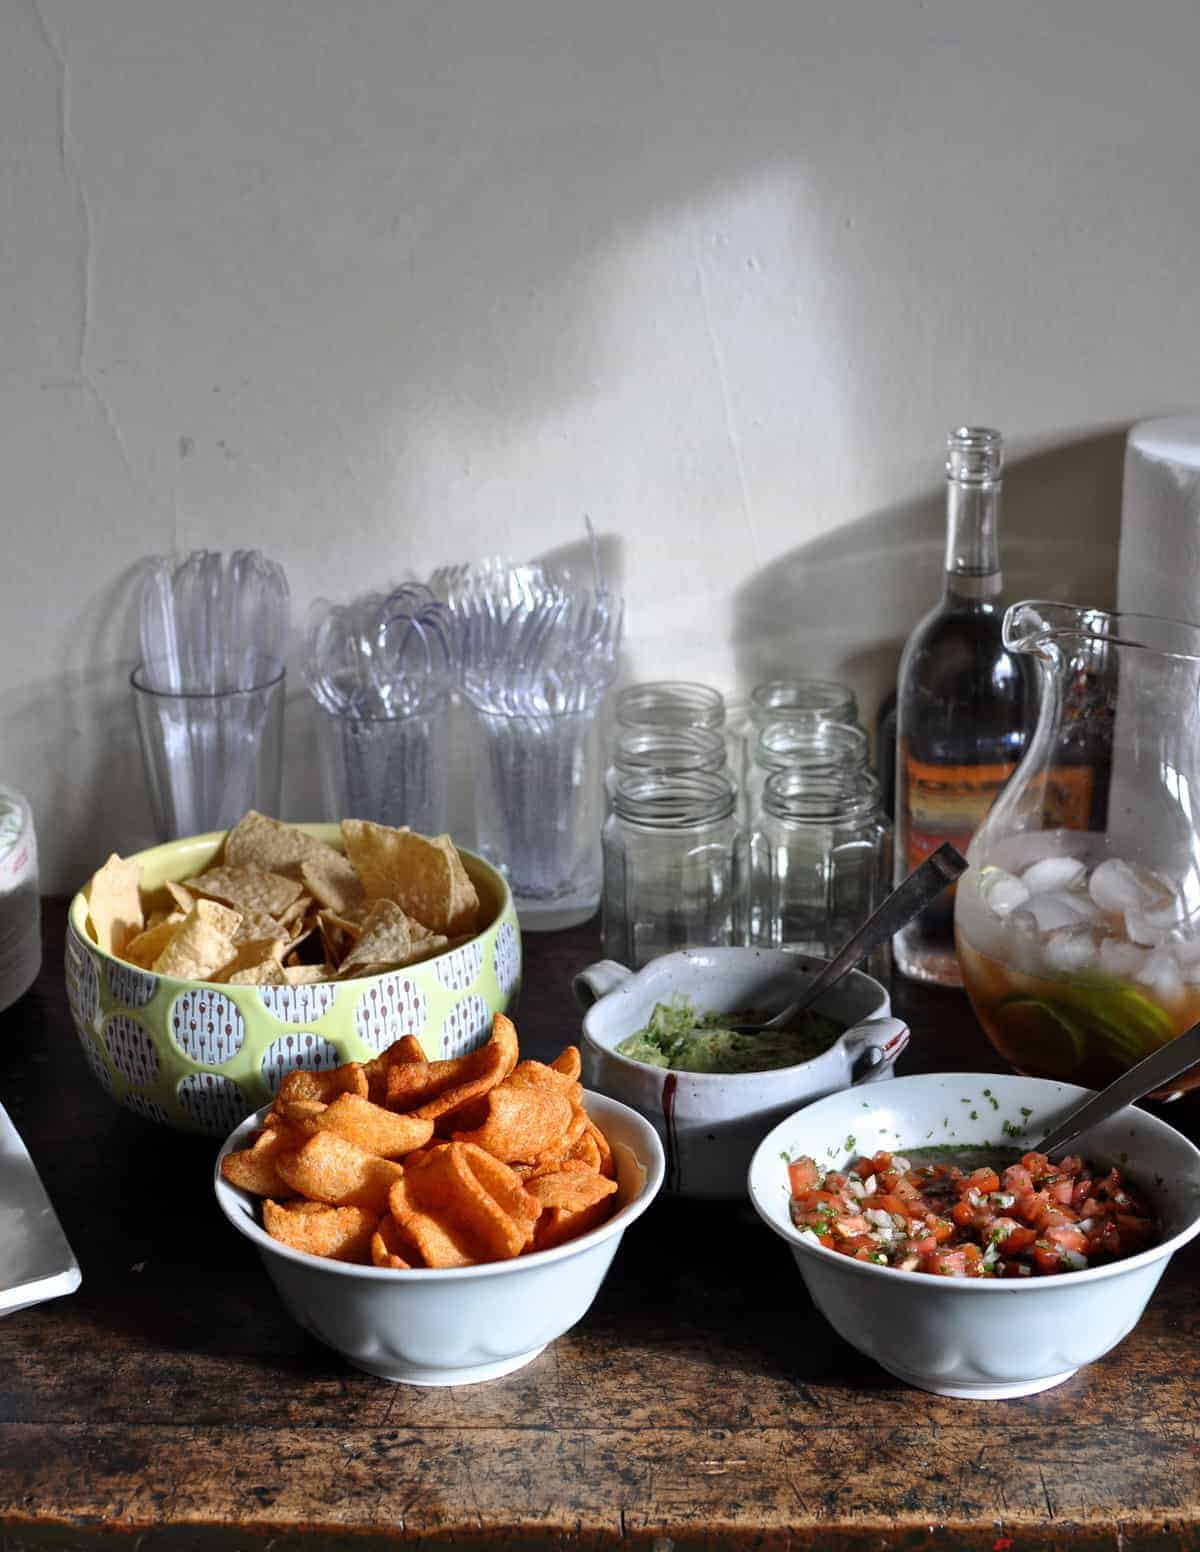 A table set with snacks and drinks for a tamalada. A yellow bowl of tortilla chips and two bowls of salsa.